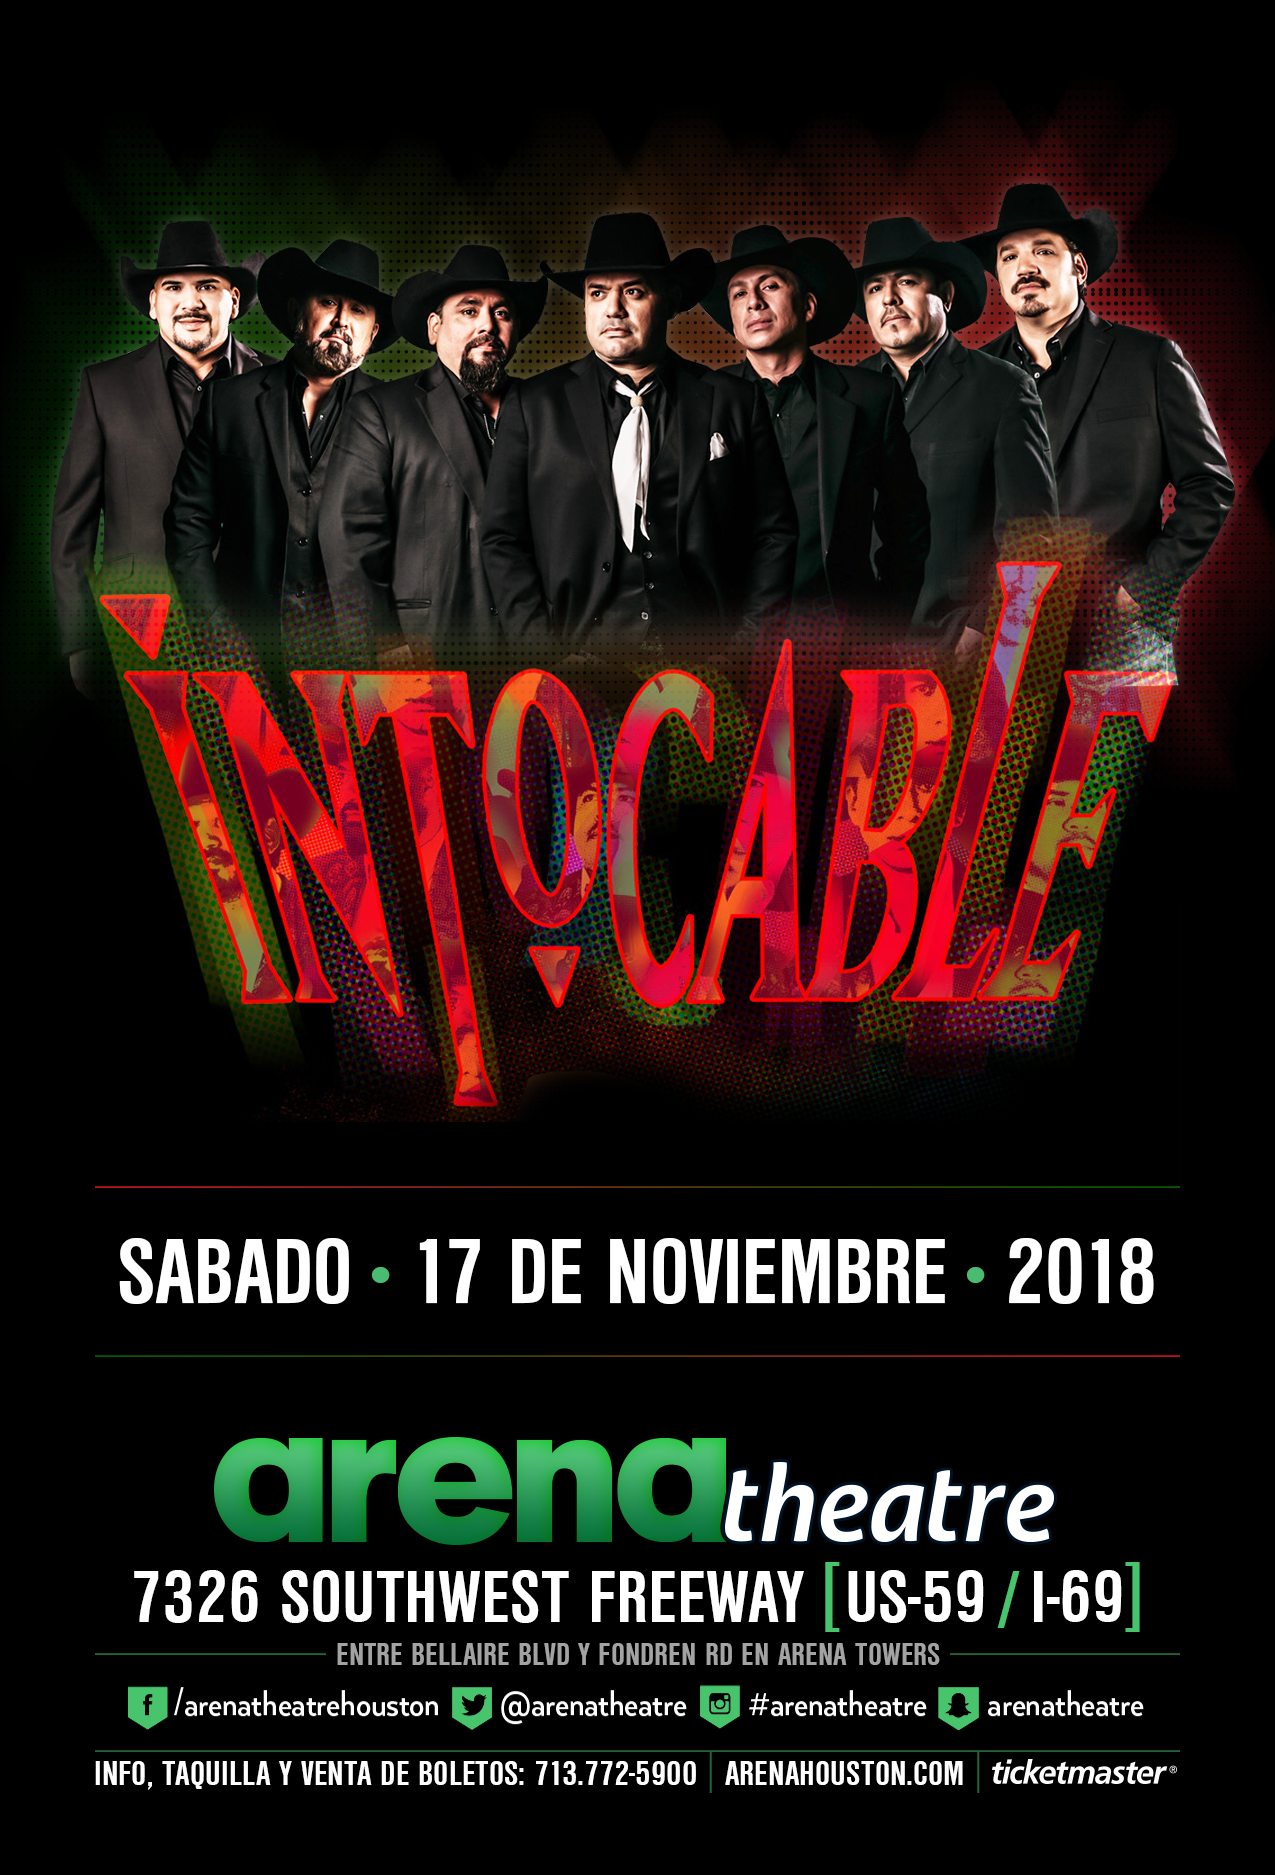 Intocable in concert on Saturday, November 17, 2018